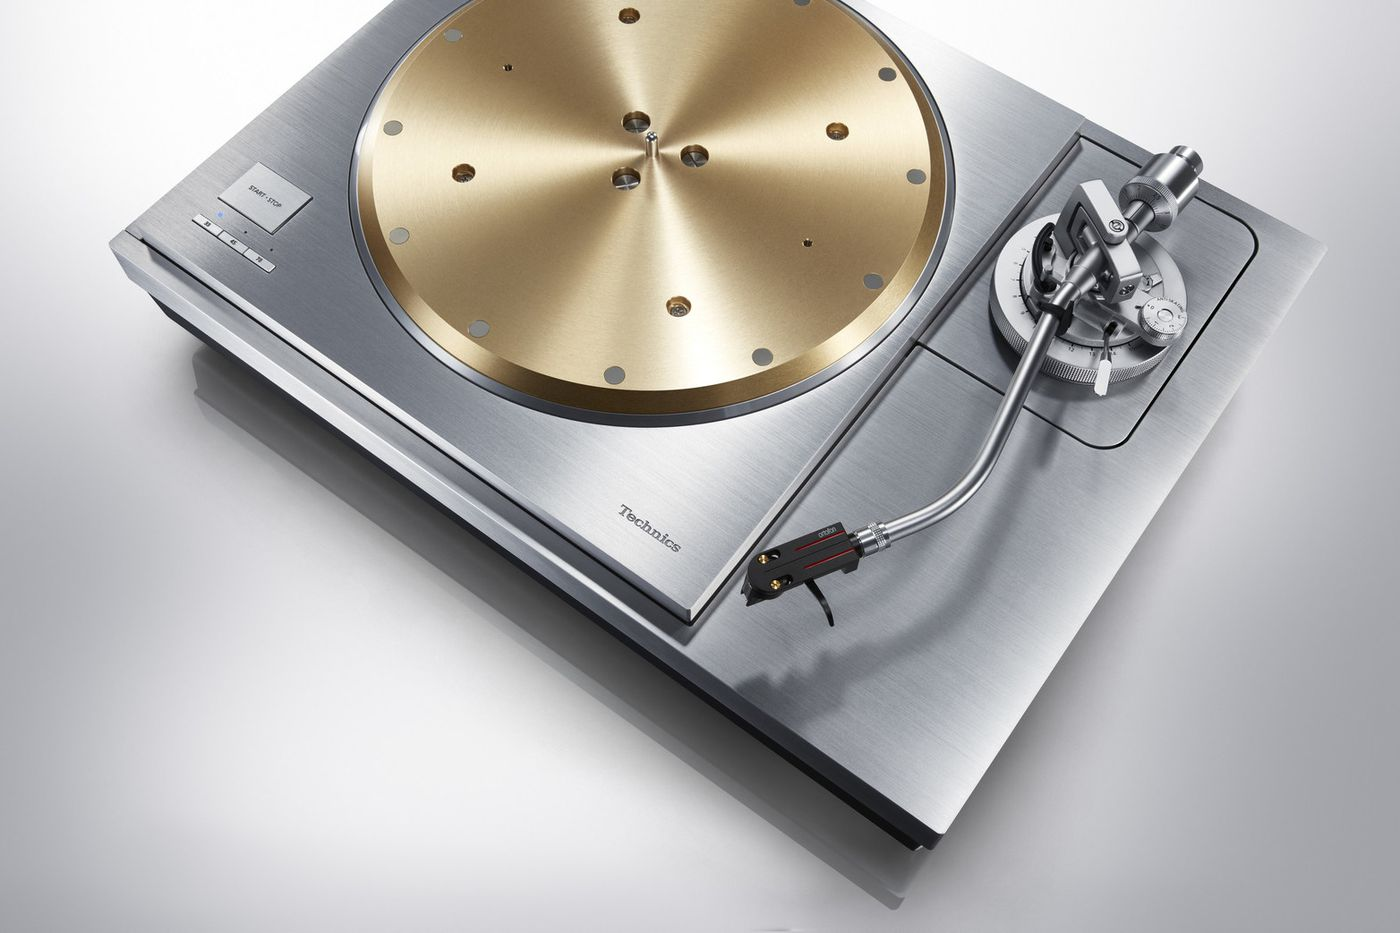 Technics' new premium turntables will start at $10,000 - The Verge